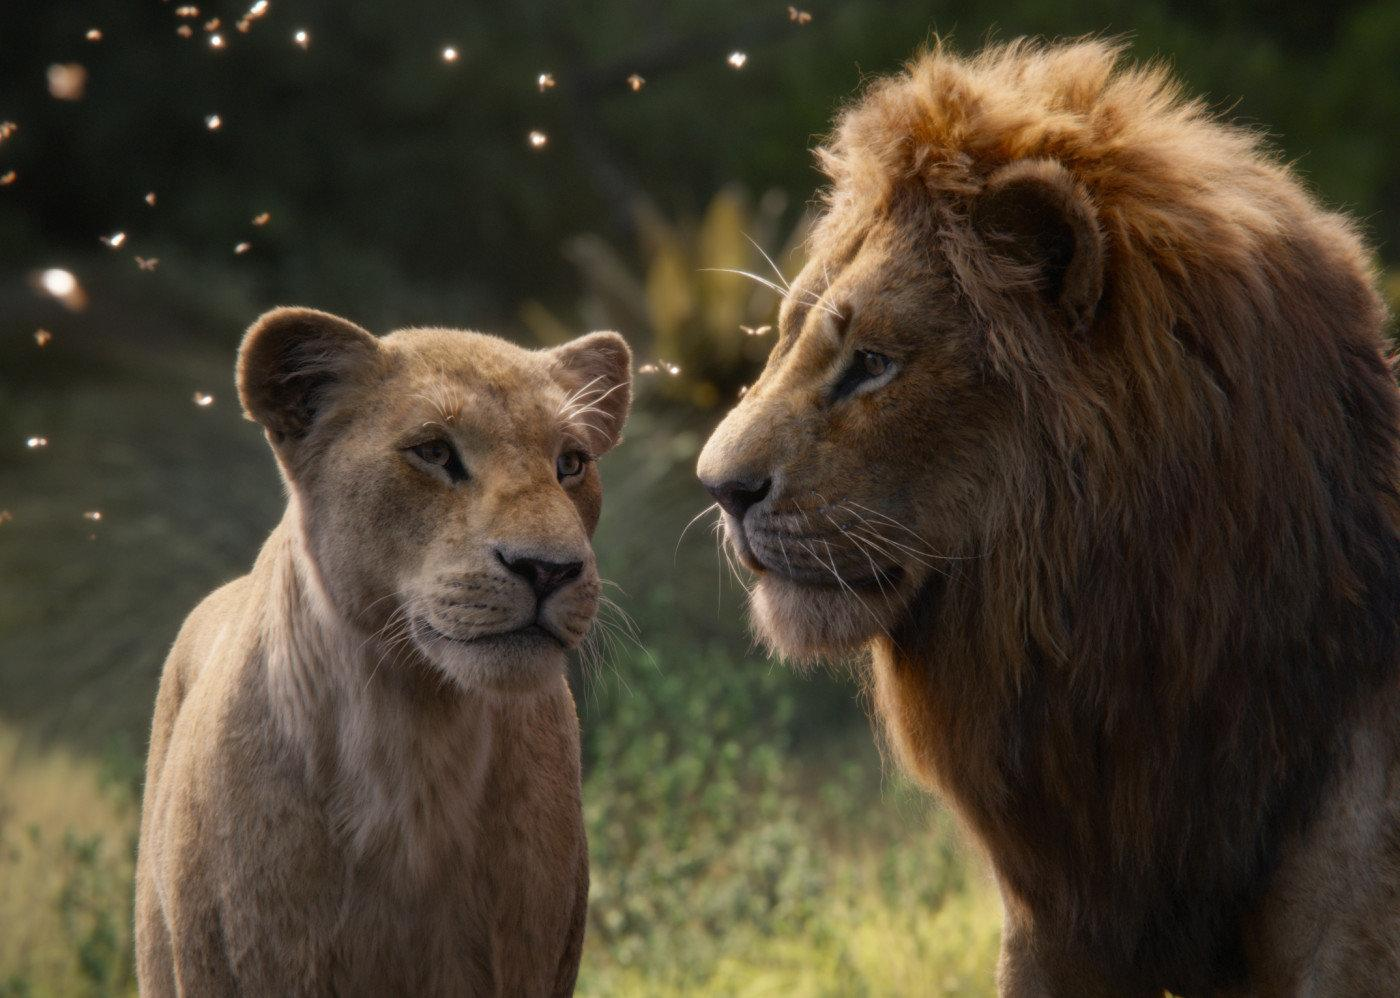 Disney boss Bob Iger says sorry after school received fine for screening 'The Lion King'